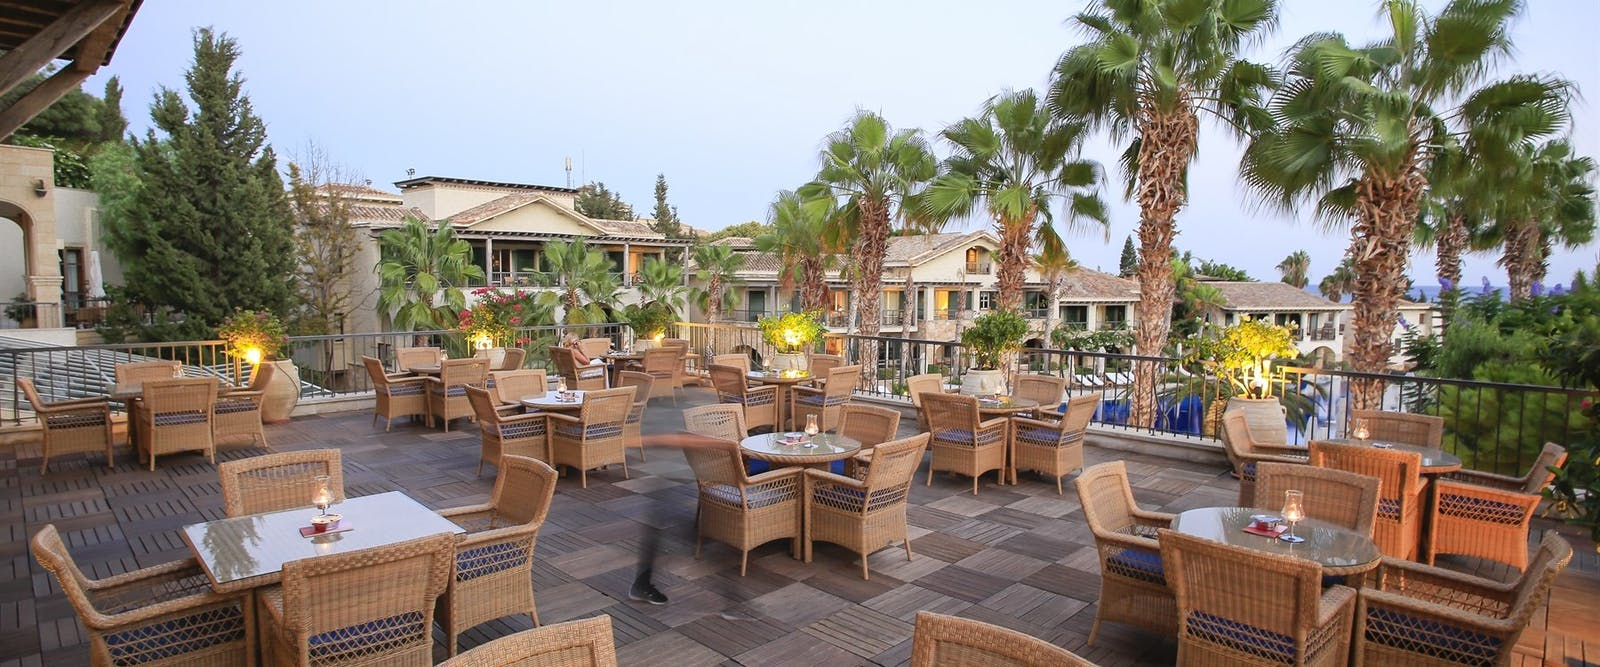 Eros Bar Terrace, Columbia Beach Resort, Pissouri Bay, Cyprus